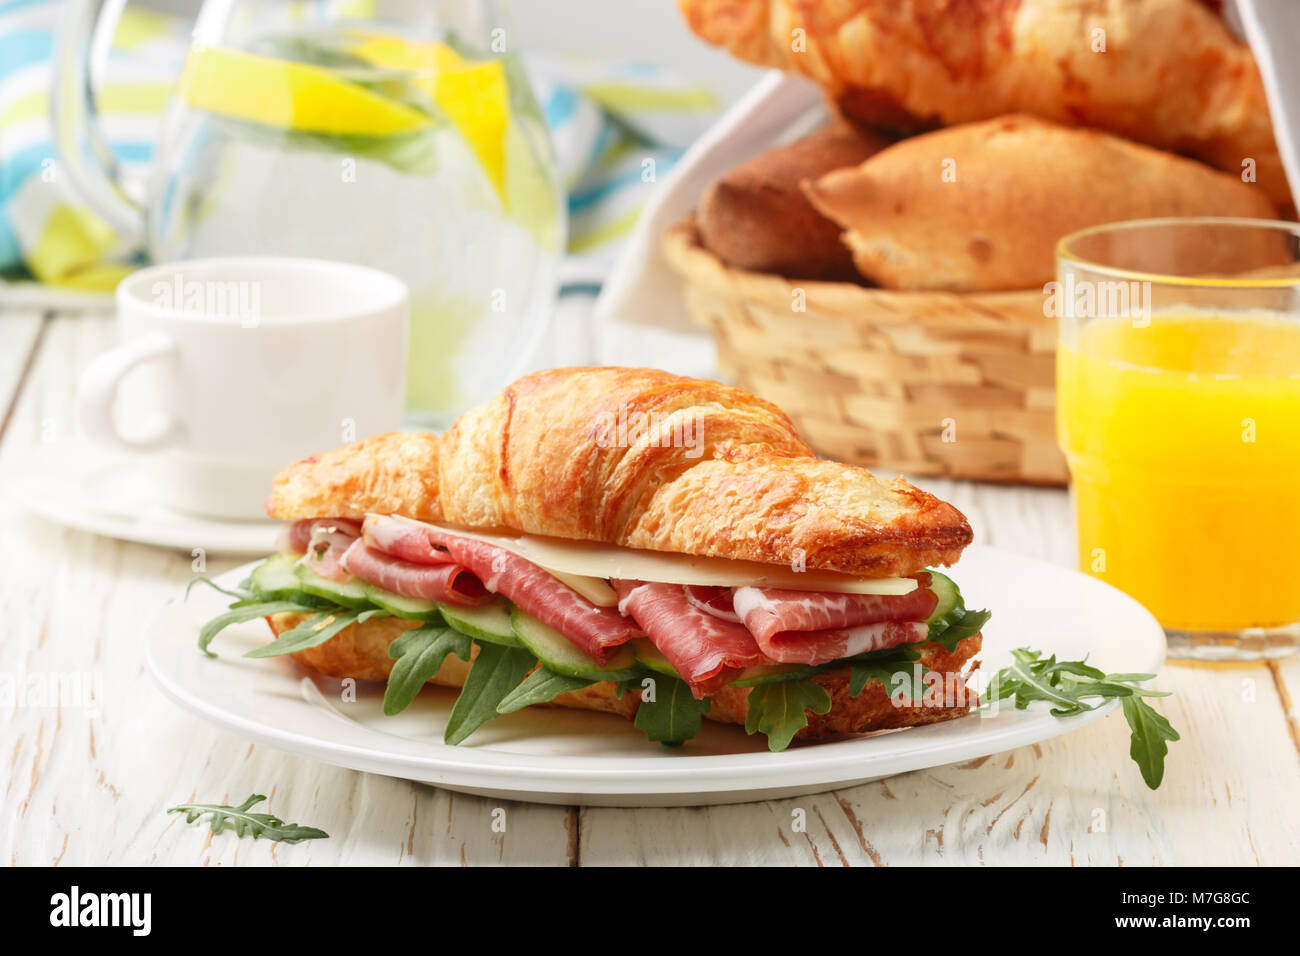 Fresh sandwich-croissant with ham, arugula, cucumber and cheese in a white plate, lemonade, orange juice and coffee - Stock Image